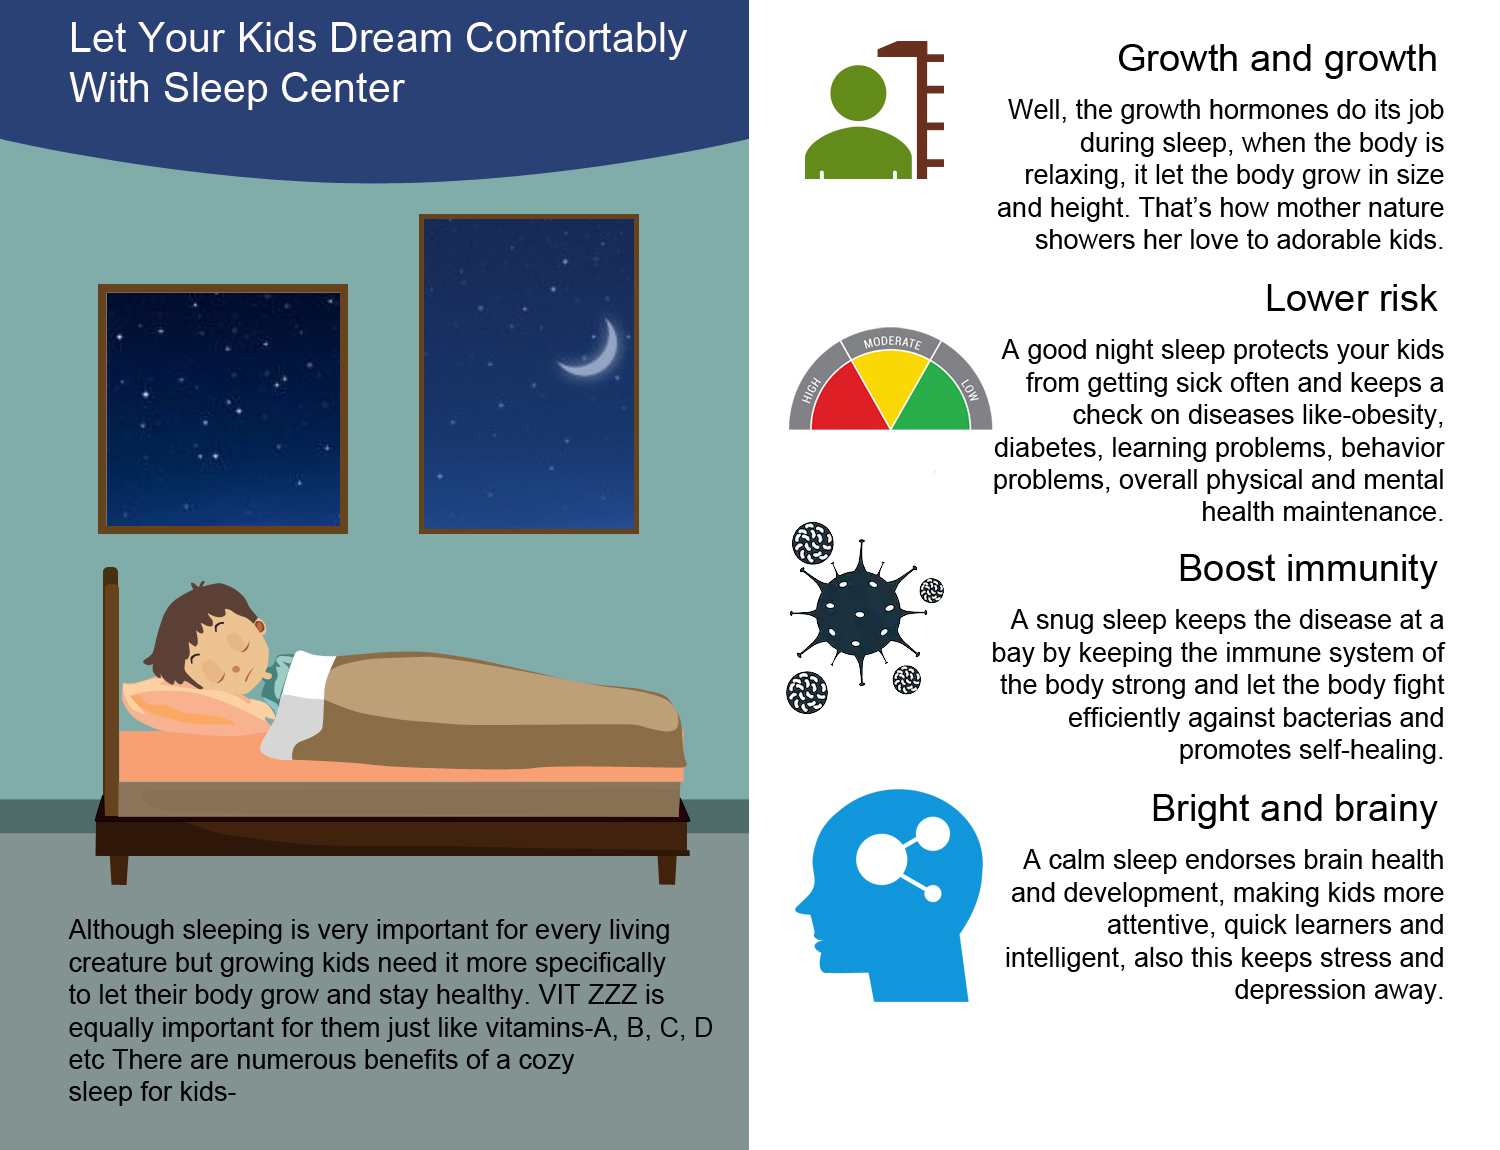 Let Your Kids Dream Comfortably With Sleep Center